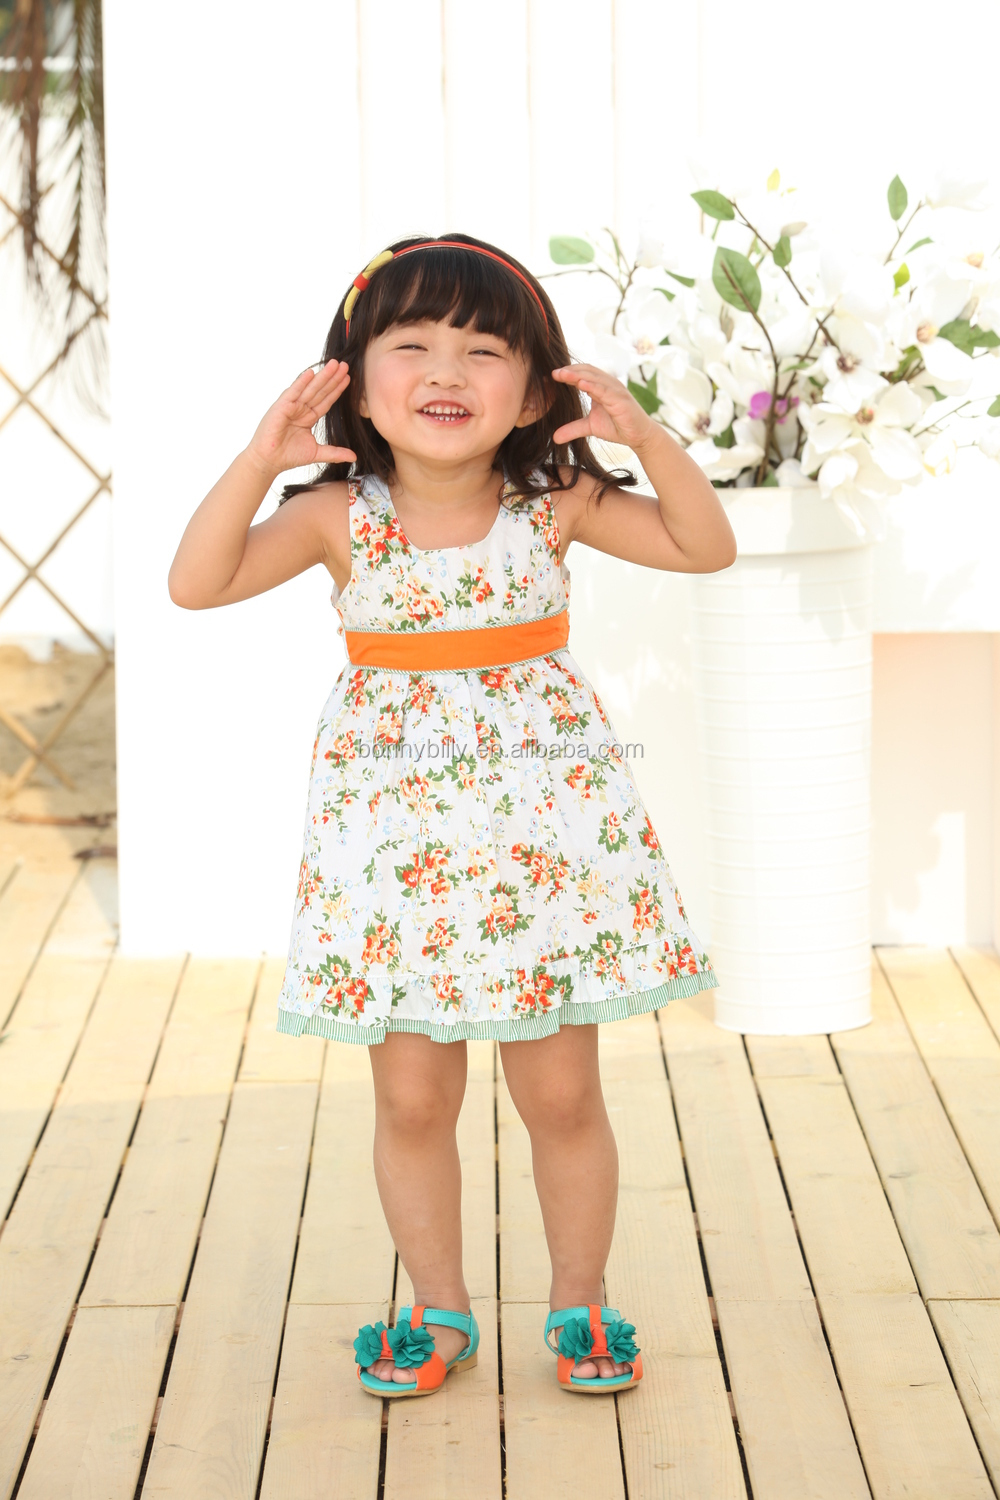 A dress makes the perfect present she can wear to the party. Bring on the ruffles and tulle skirts from Sweet Heart Rose and Carter's collections of baby girls' dresses. Check out fun sparkly styles with sequins and rhinestone embellishments from Rare Editions.